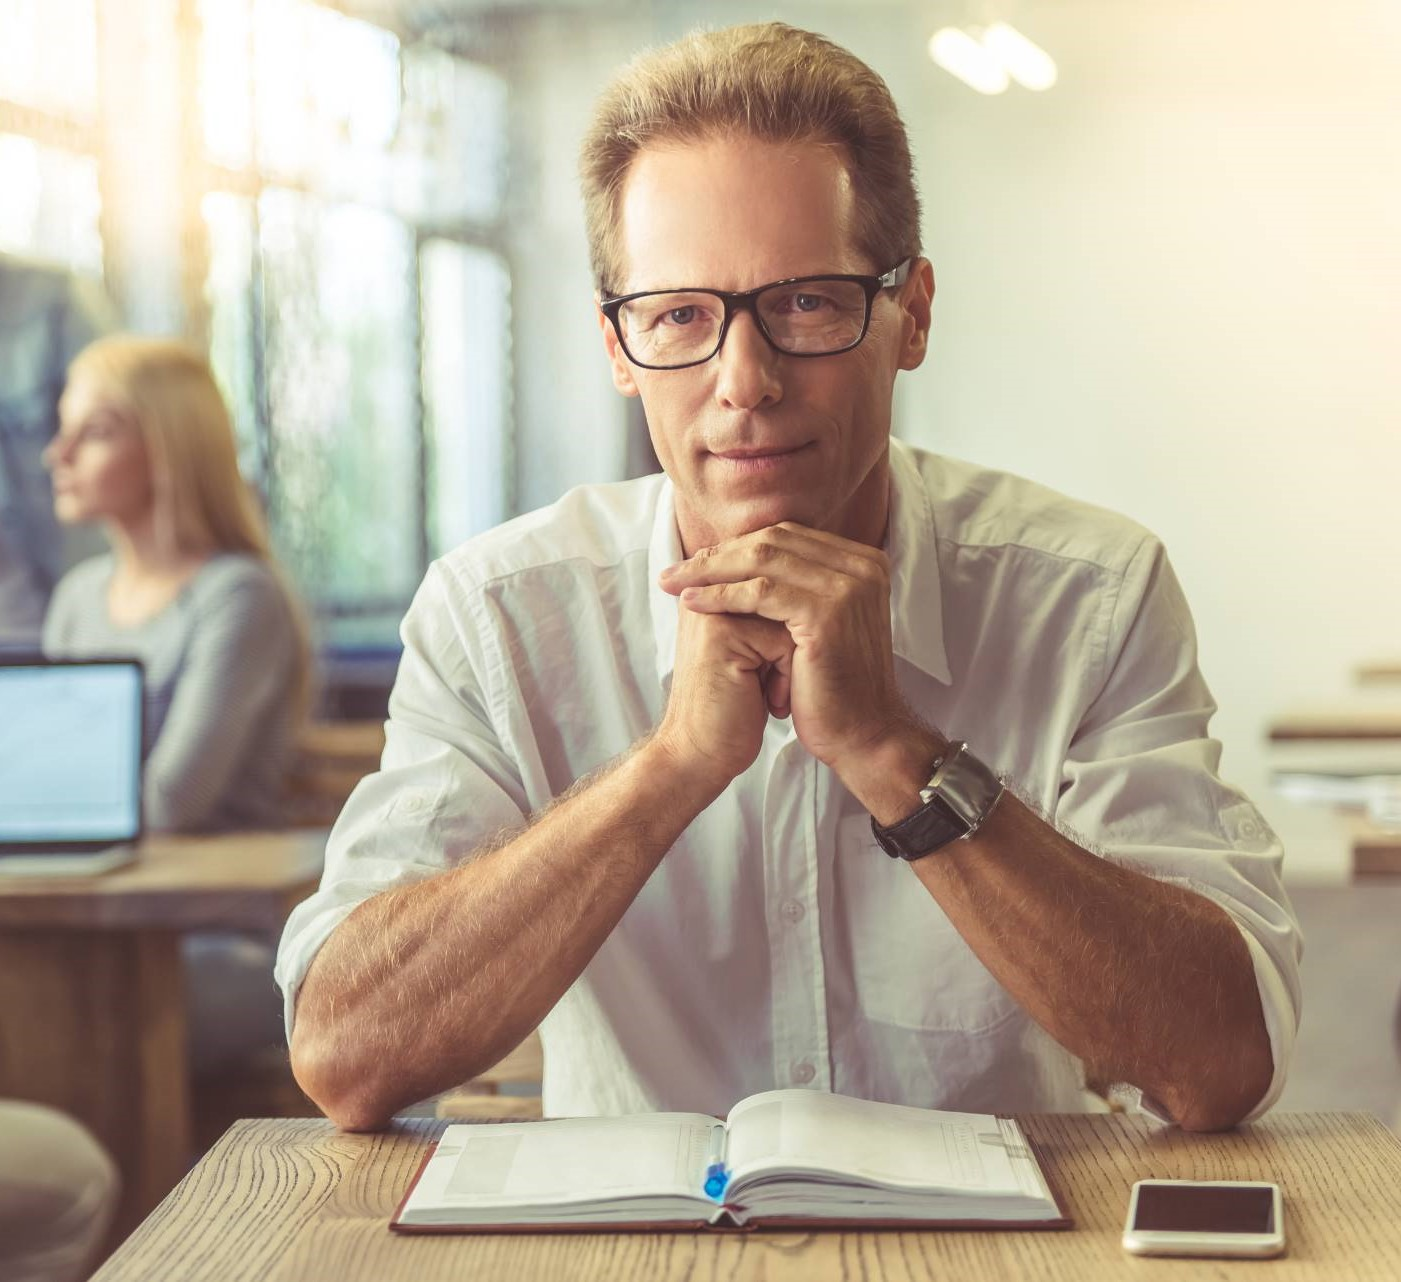 Businessman in shirt and eyeglasses is looking at camera.